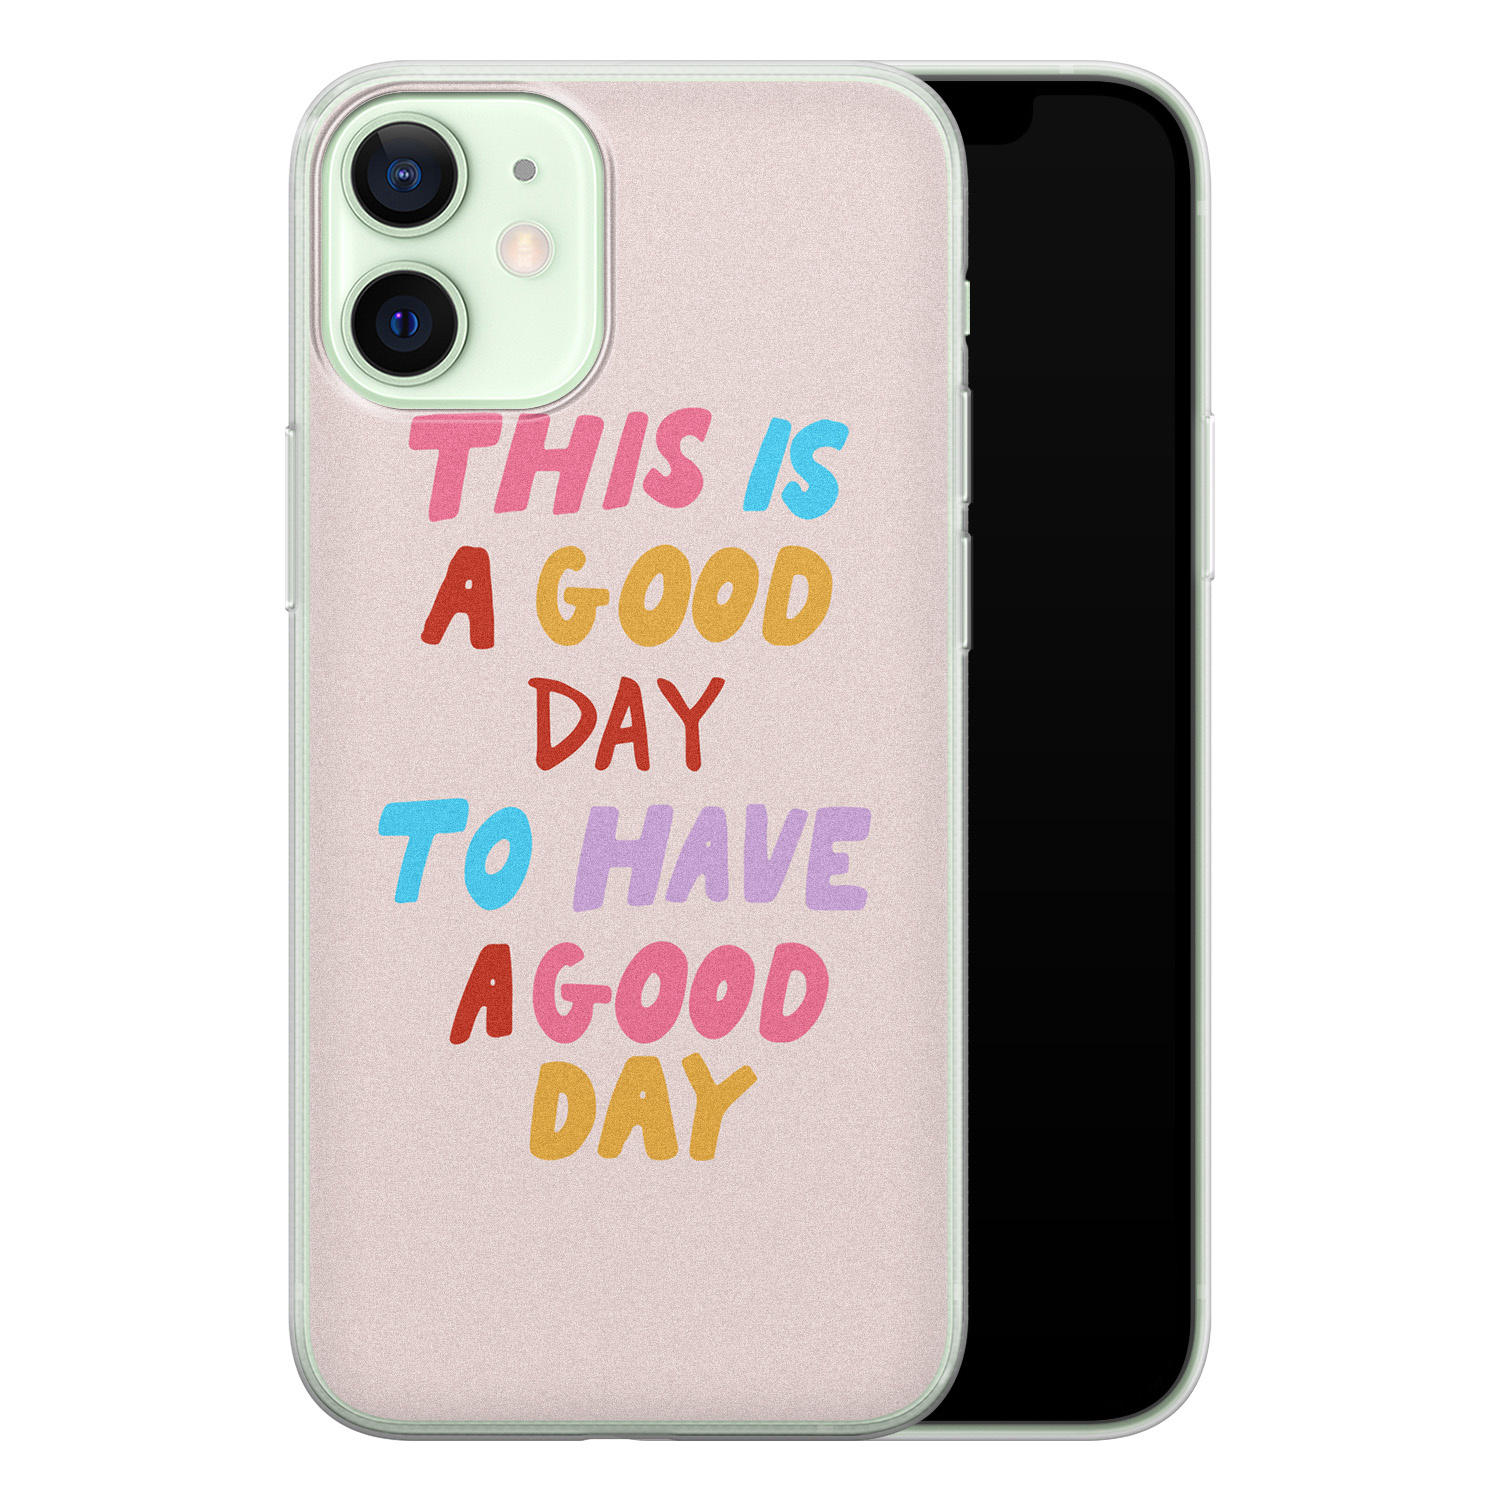 iPhone 12 mini siliconen hoesje - This is a good day